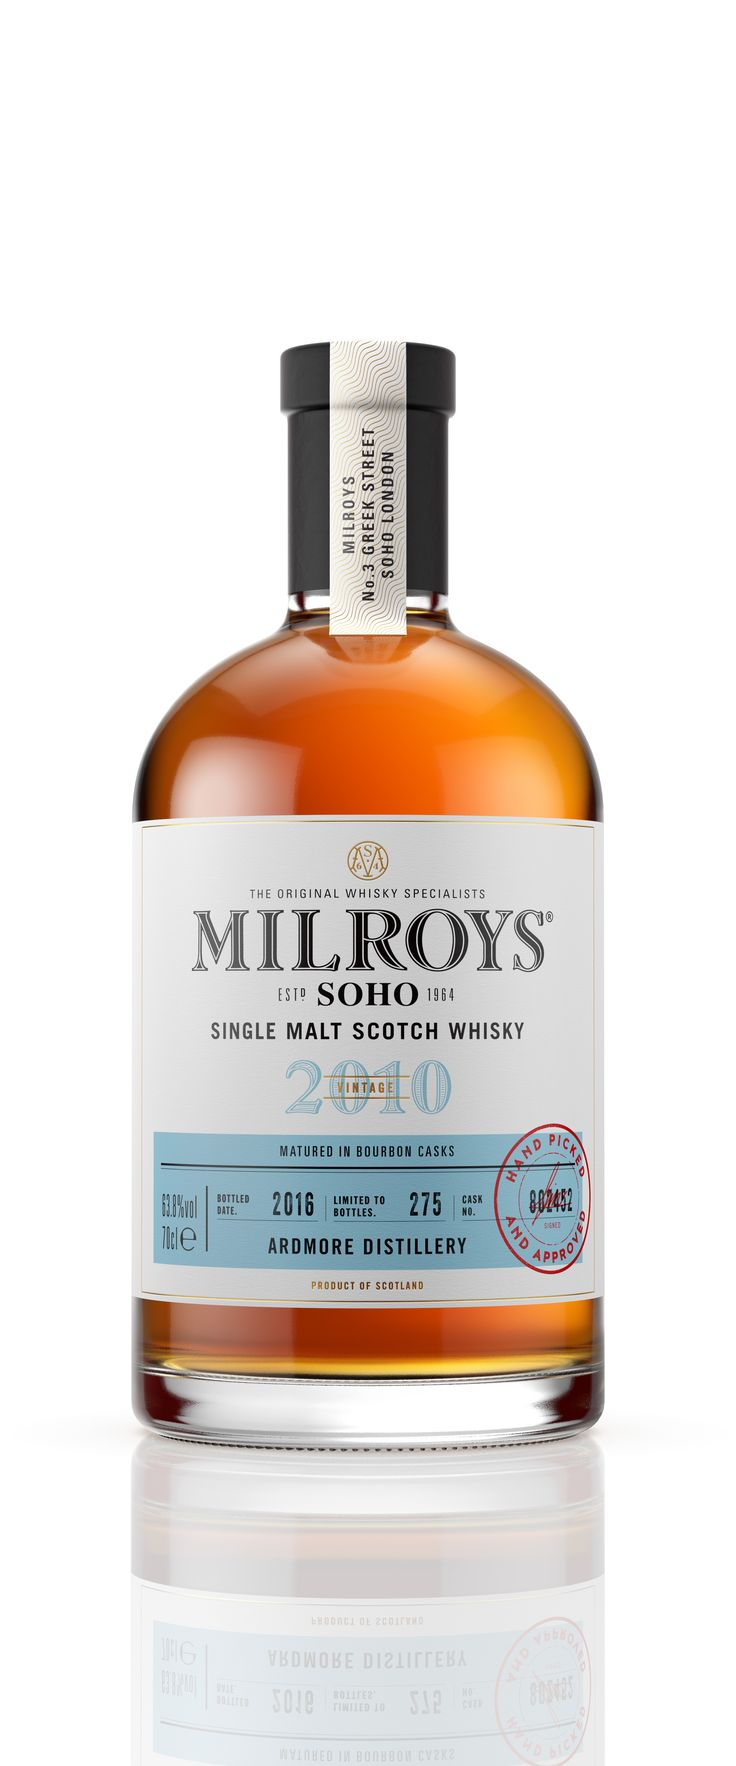 """Consultancy Good has designed the branding for whisky shop Milroys of Soho. The rebrand also includes a new interior for the brand's store on Greek Street in London's Soho, alongside a new website and four new whiskies. The new look aims to bring together the """"classic and the handcrafted"""", says the design studio."""